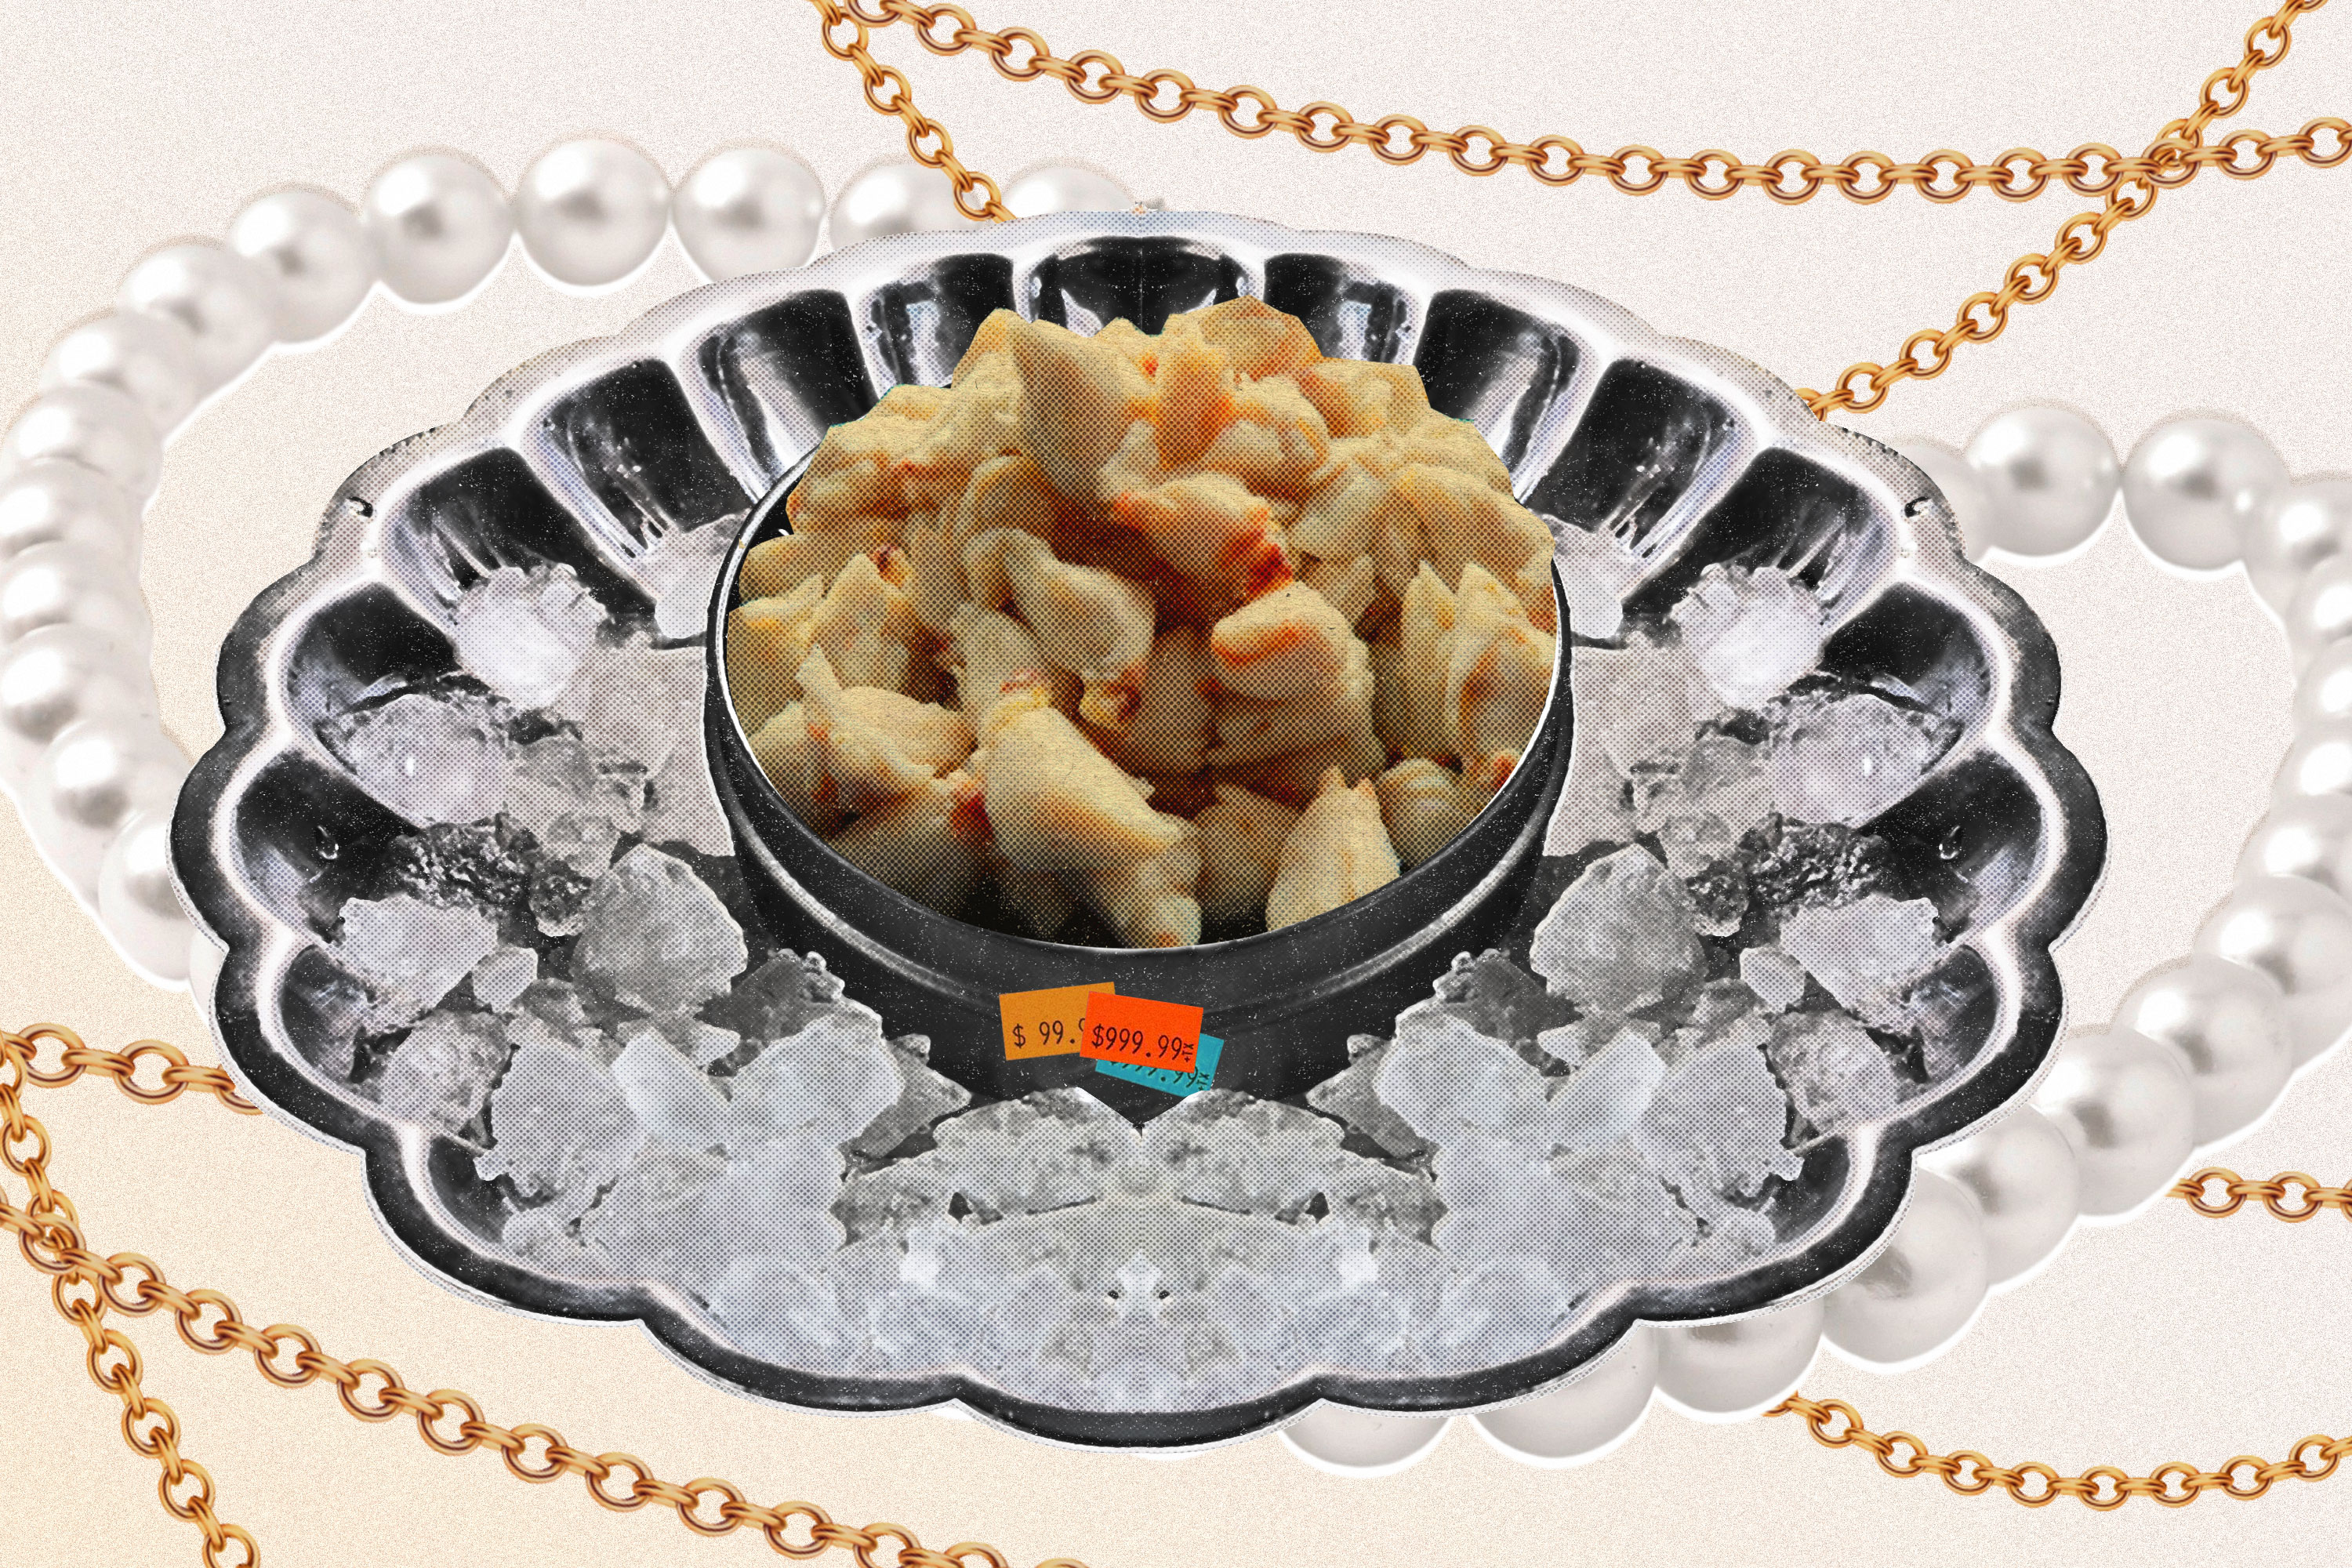 An illustration depicts crab meat in an iced serving vessel typically reserved for caviar.